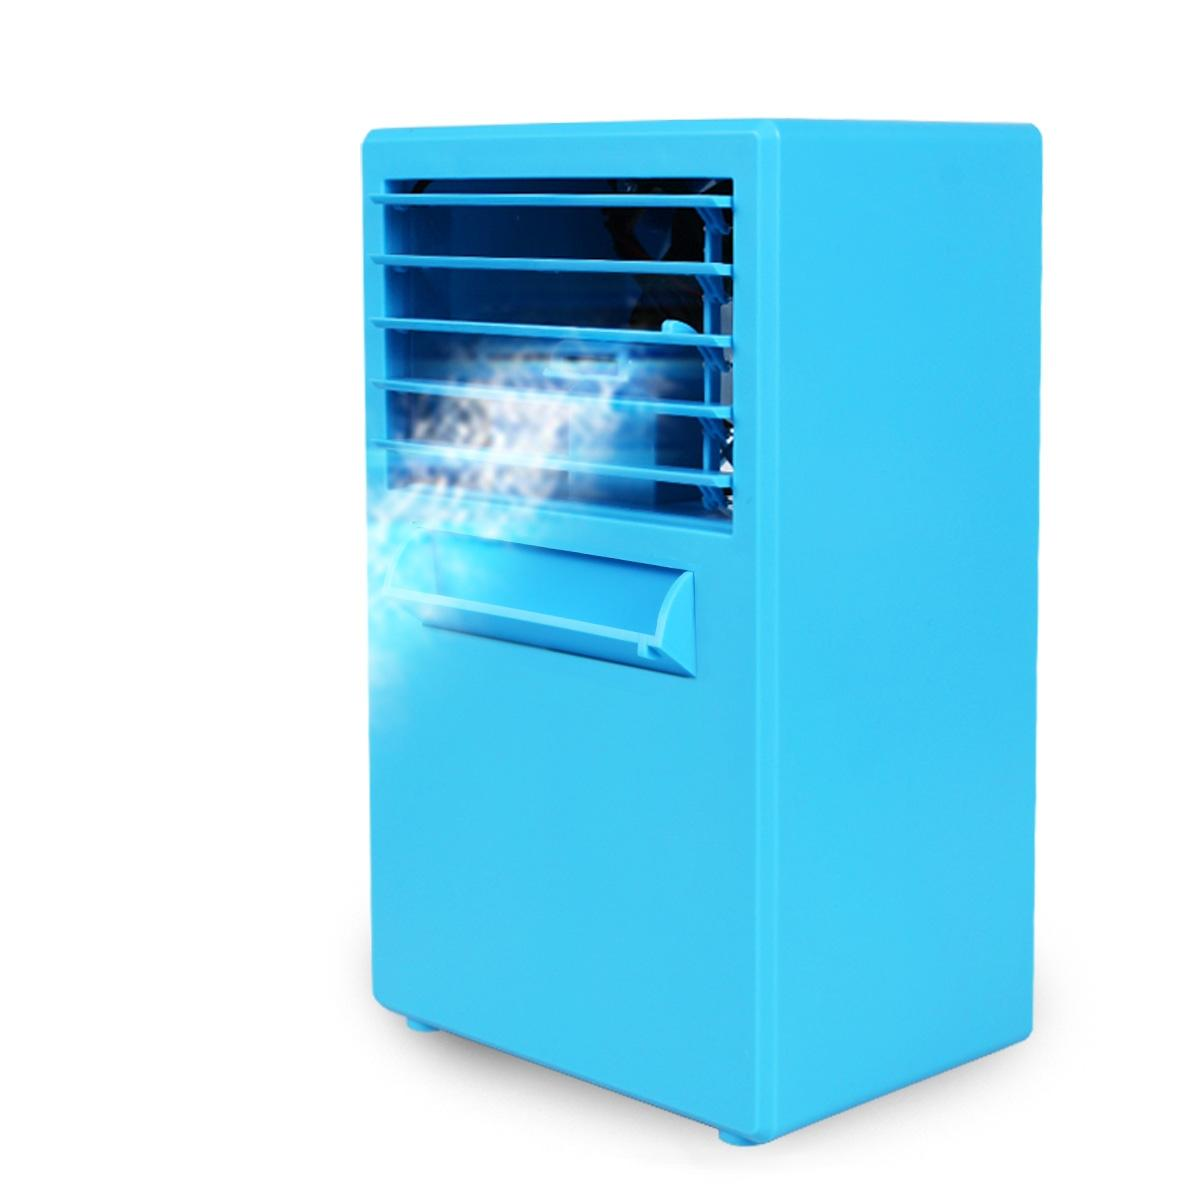 цена на NEW Air Cooler Air Personal Space Cooler The Quick & Easy Way to Cool Any Space Air Conditioner Device Home Office Desk